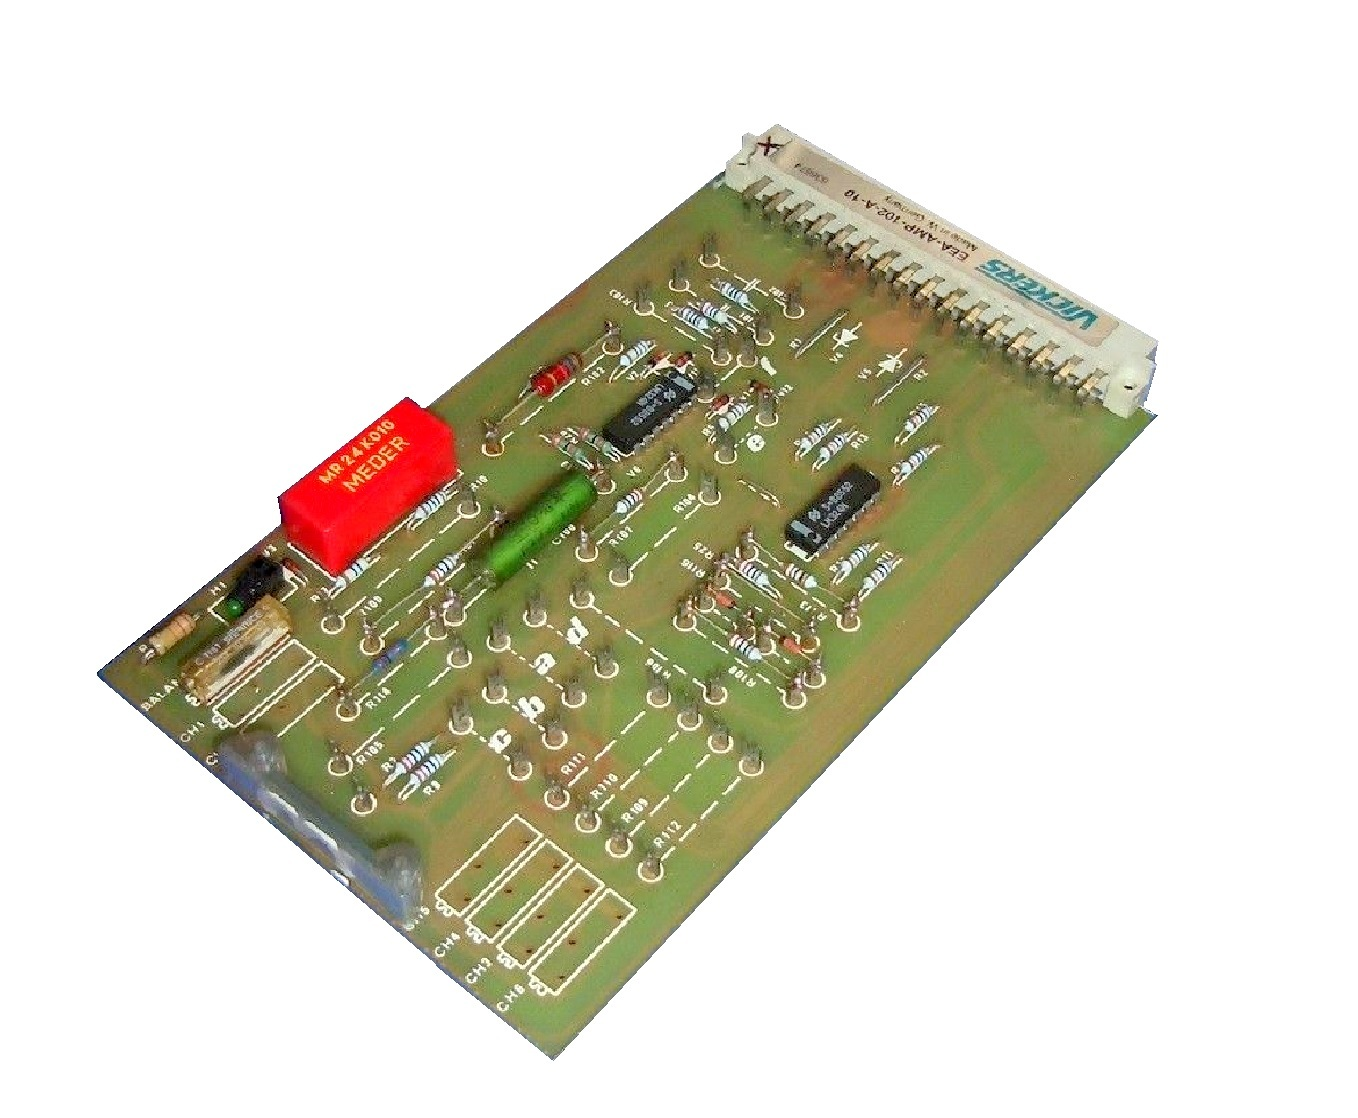 EEA-AMP-102 Amplifier Cards